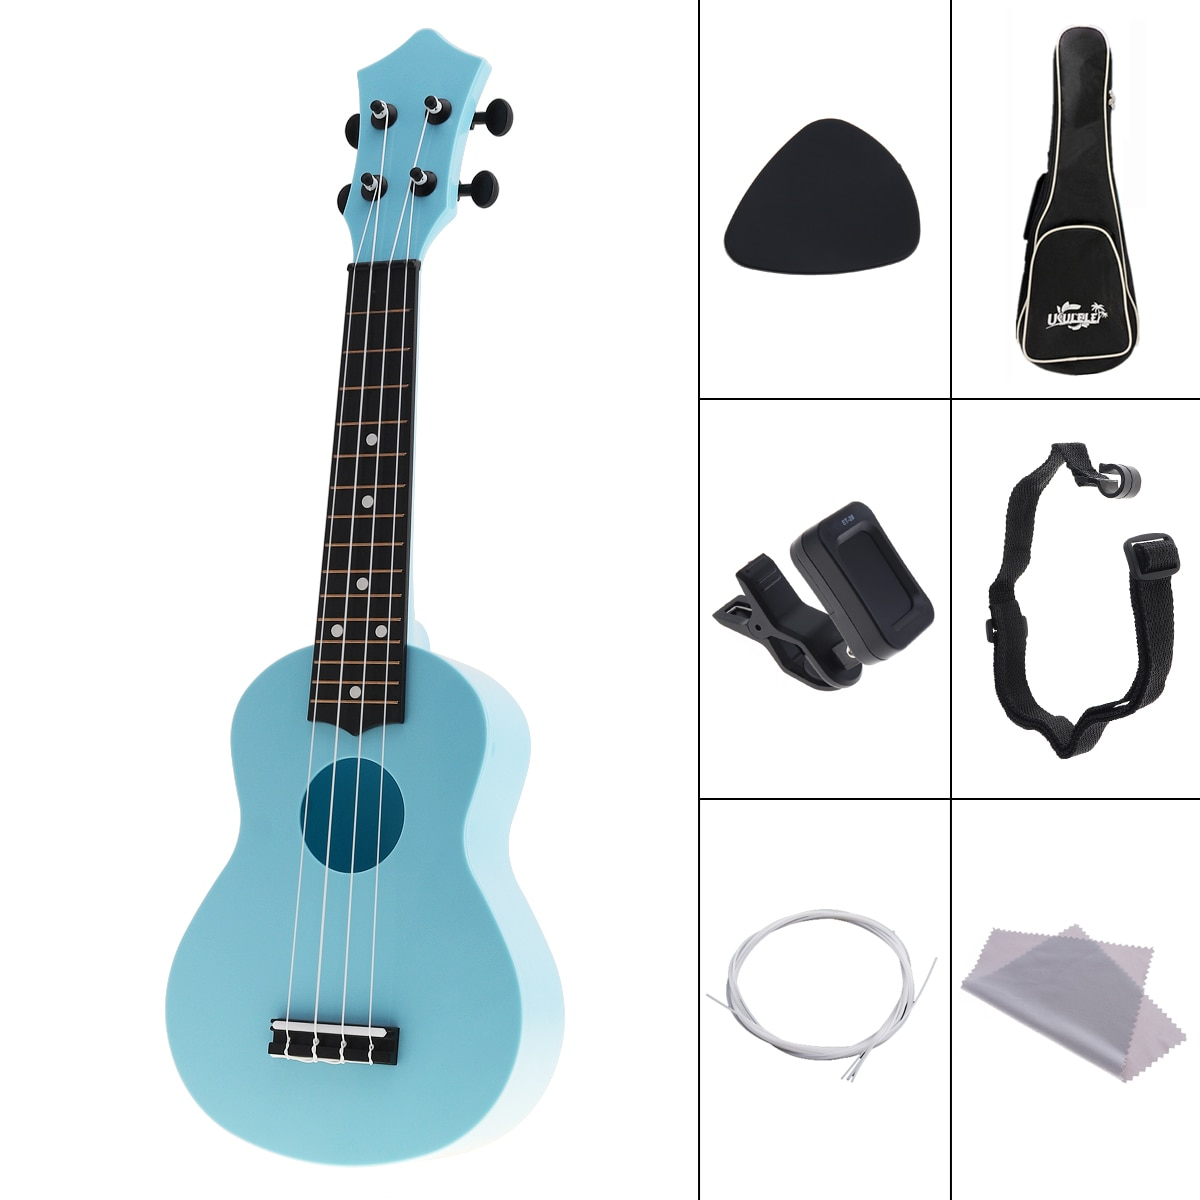 4 Strings 21 Inch ABS Ukulele Full Kits Acoustic Colorful Hawaii Guitar Guitarra Instrument for Children and Music Beginner enlarge